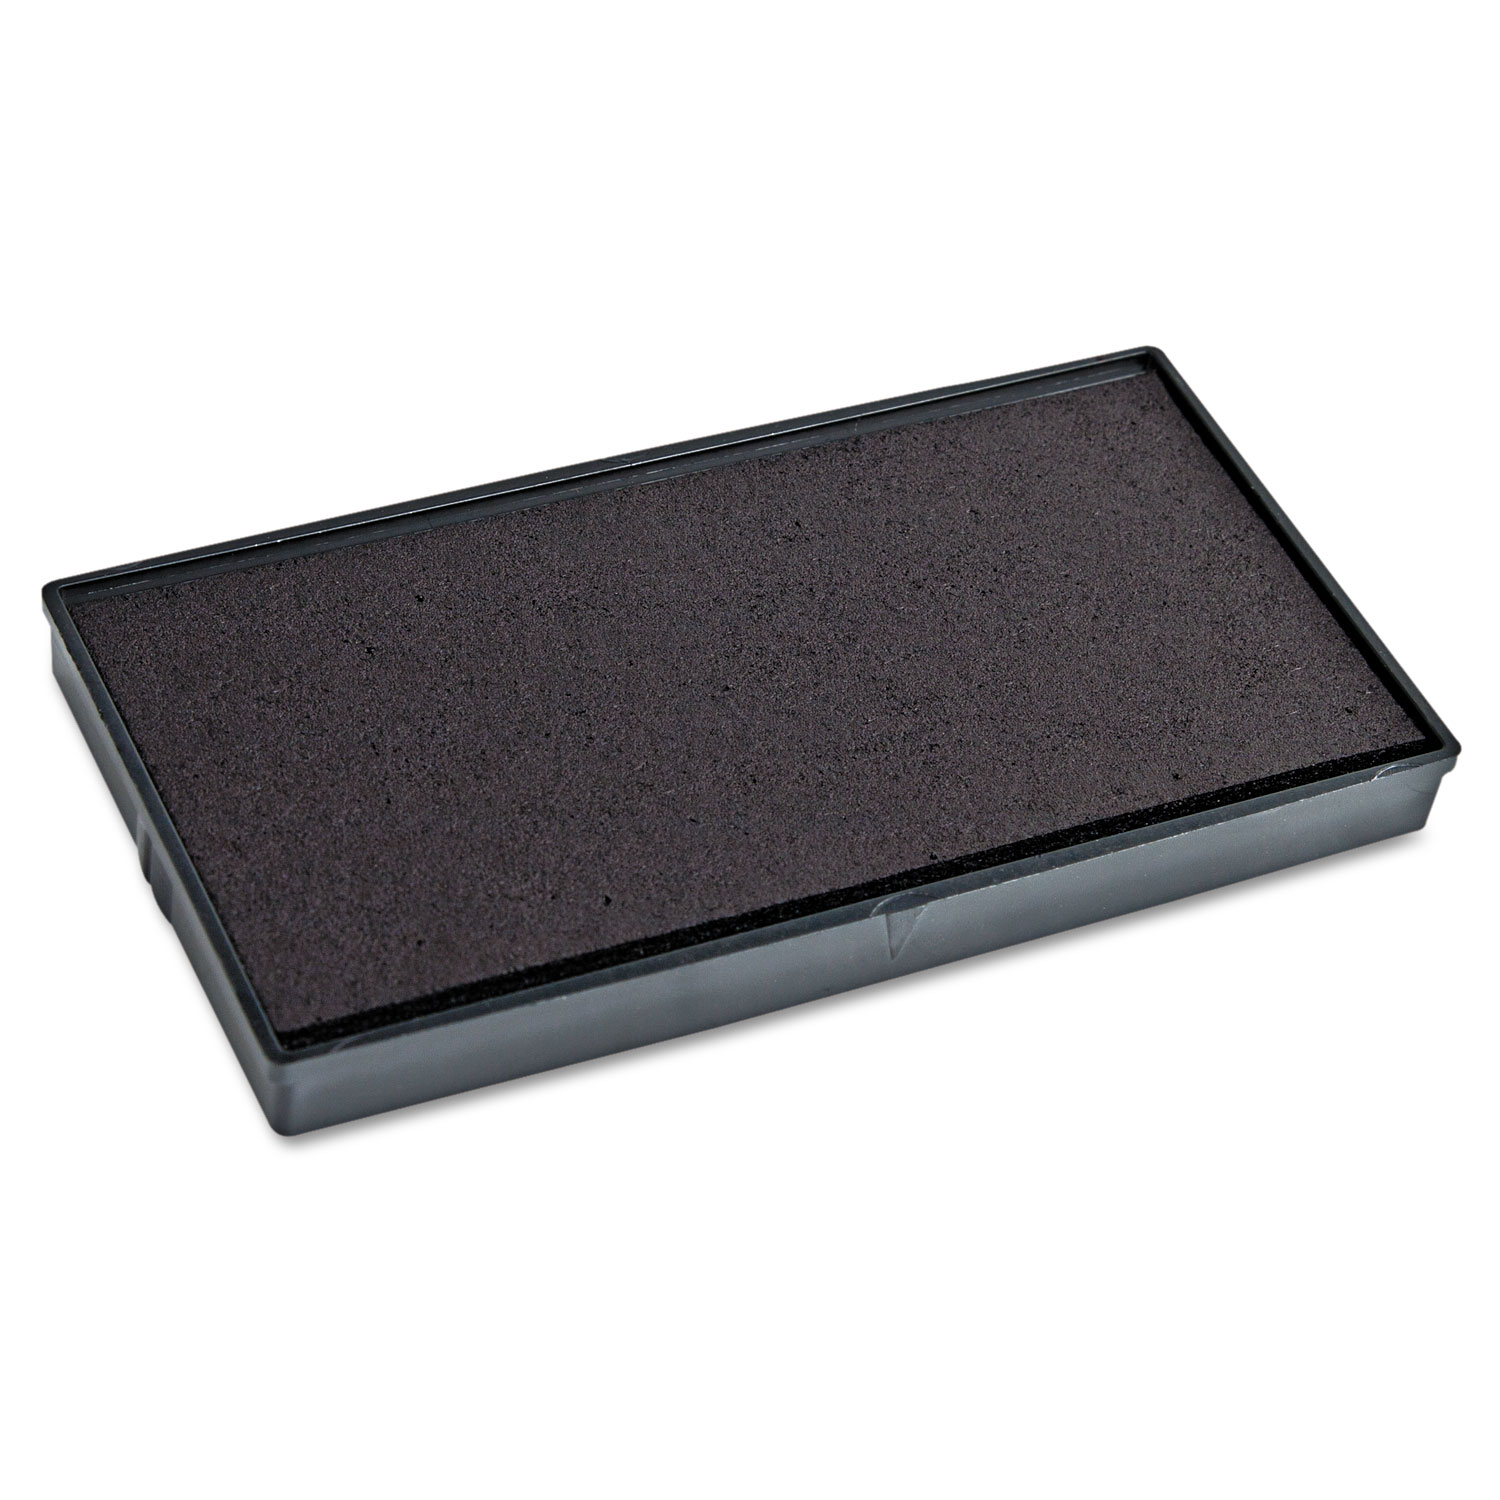 Replacement Ink Pad for 2000PLUS 1SI15P, Black COS065487